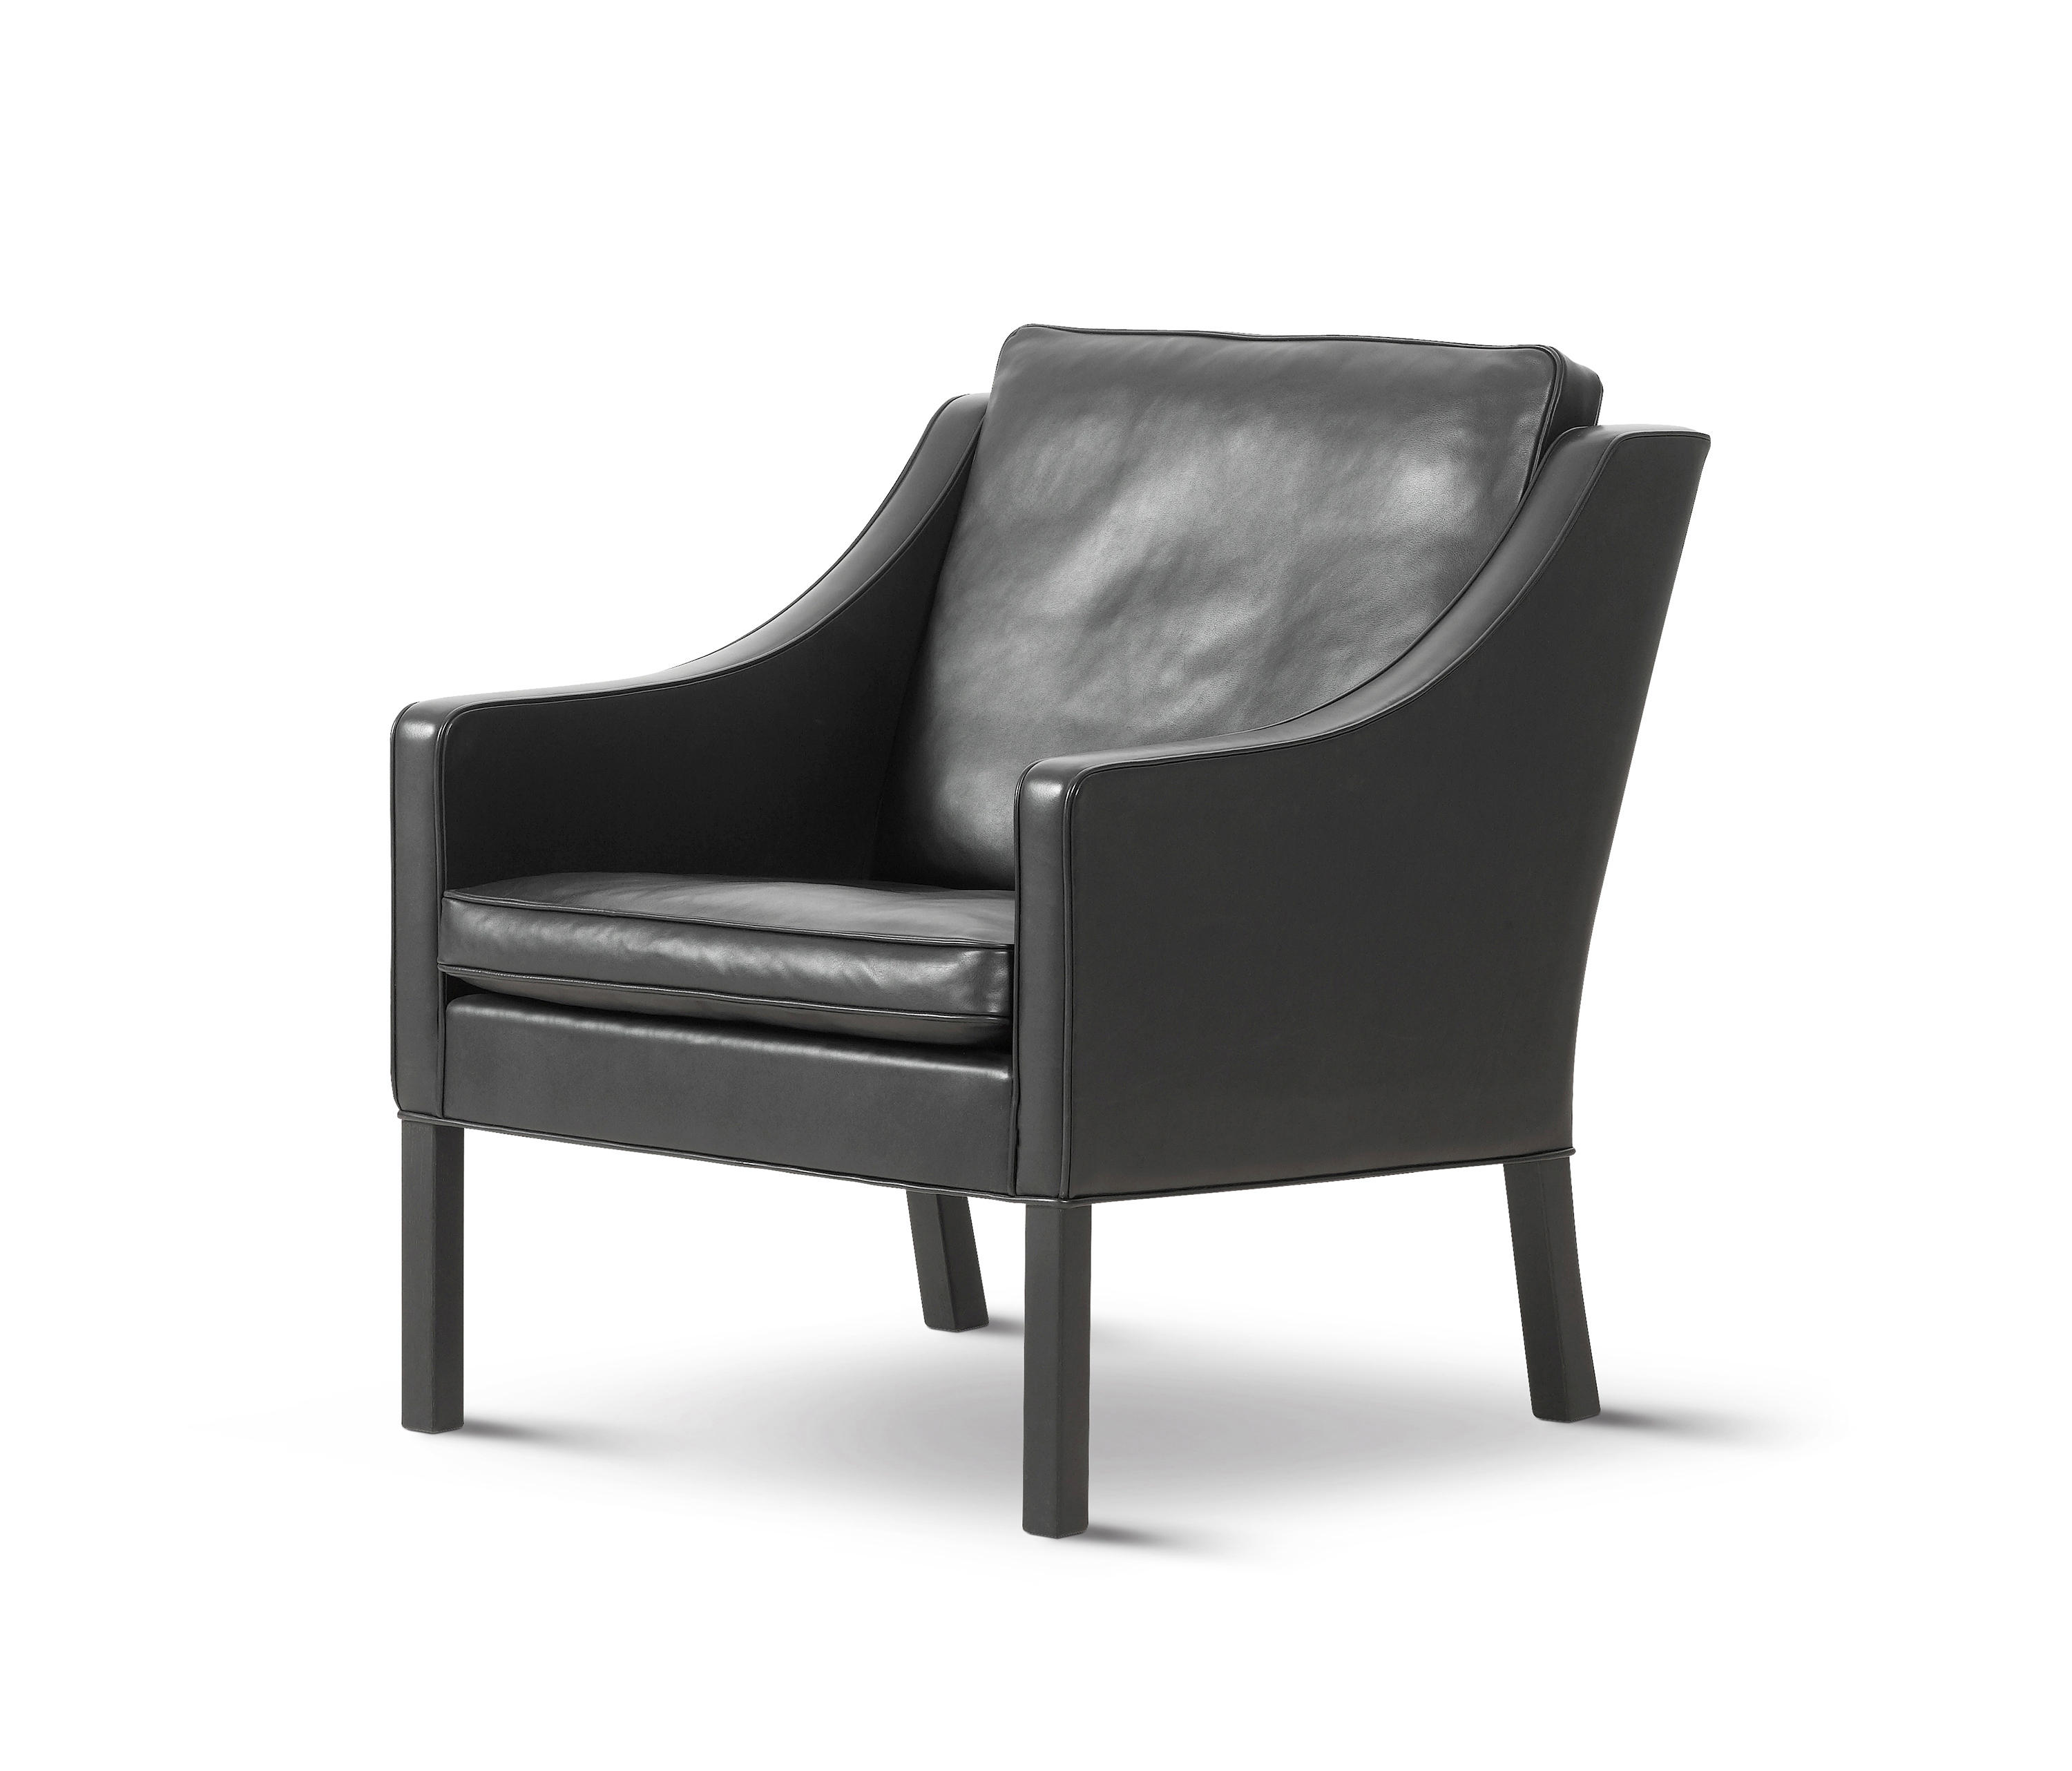 Mogensen Sessel Mogensen 2207 Chair Sessel Von Fredericia Furniture Architonic